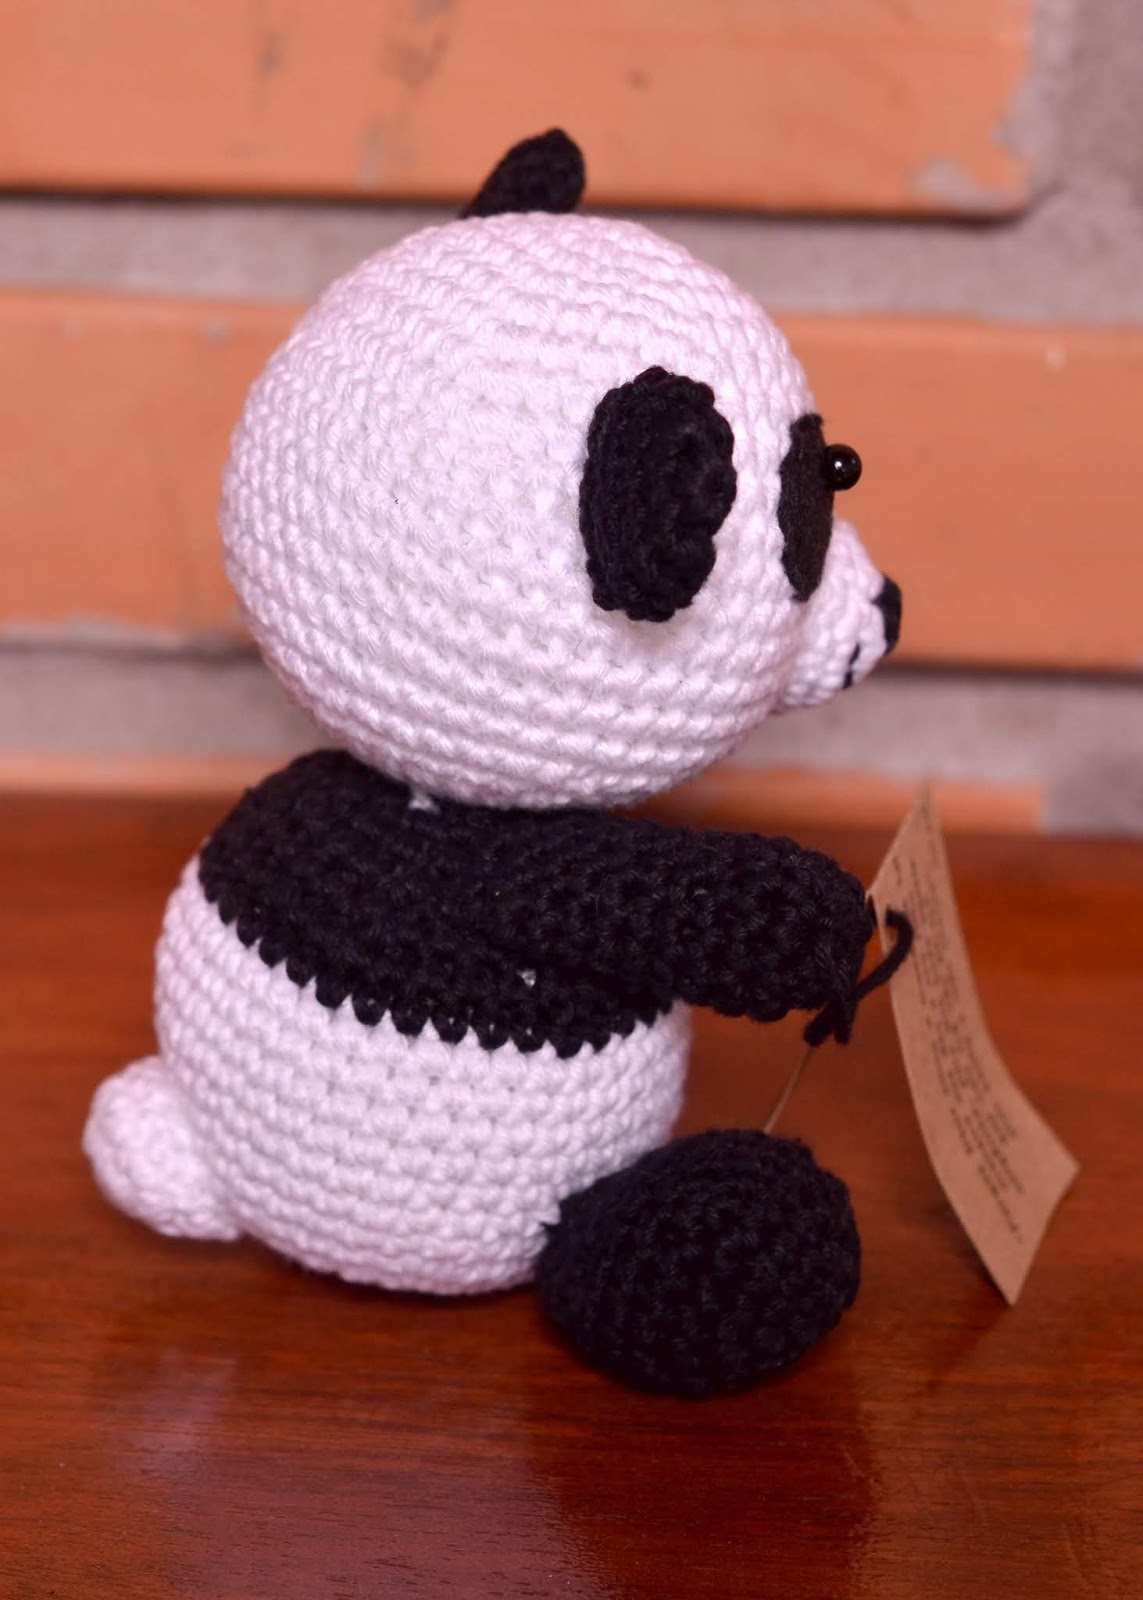 Panda Amigurumi Crochet Tutorial Part 1 - YouTube | 1600x1143